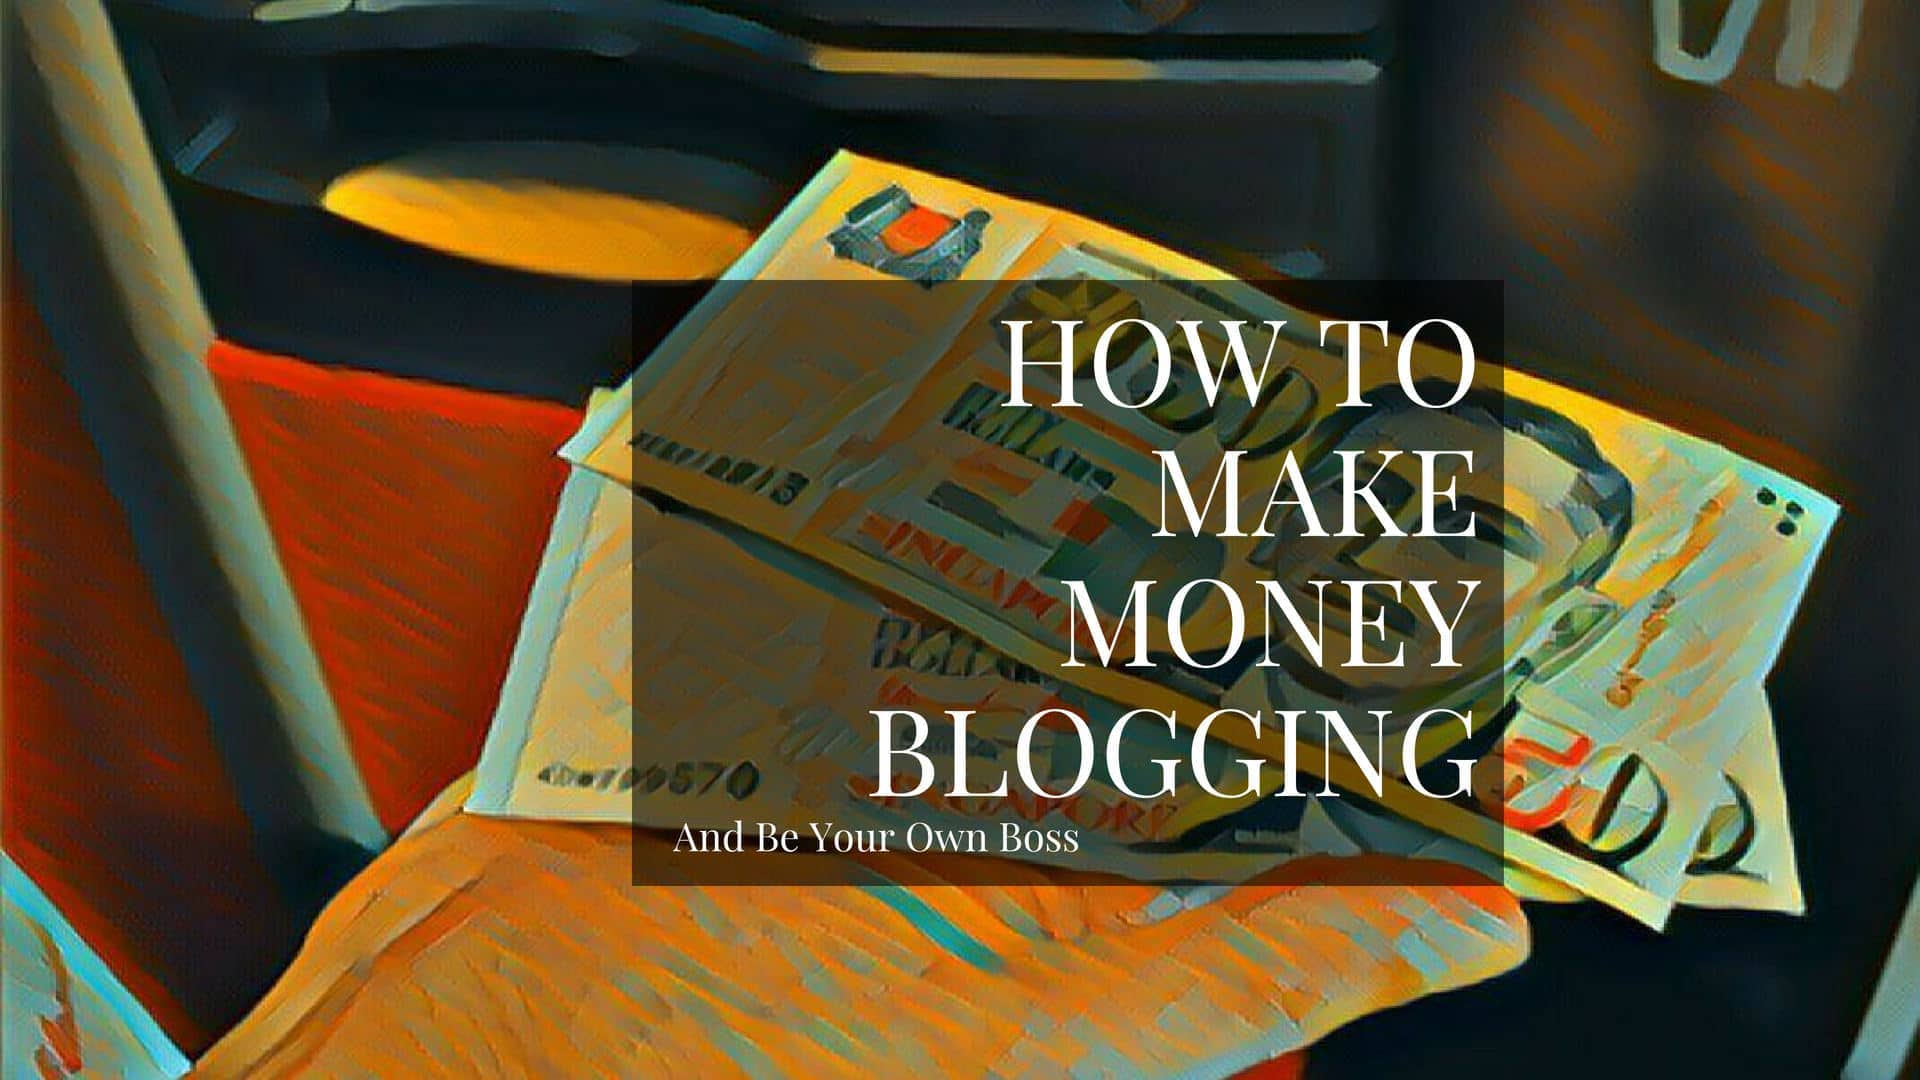 Here's how you can make your first $500 from your blog